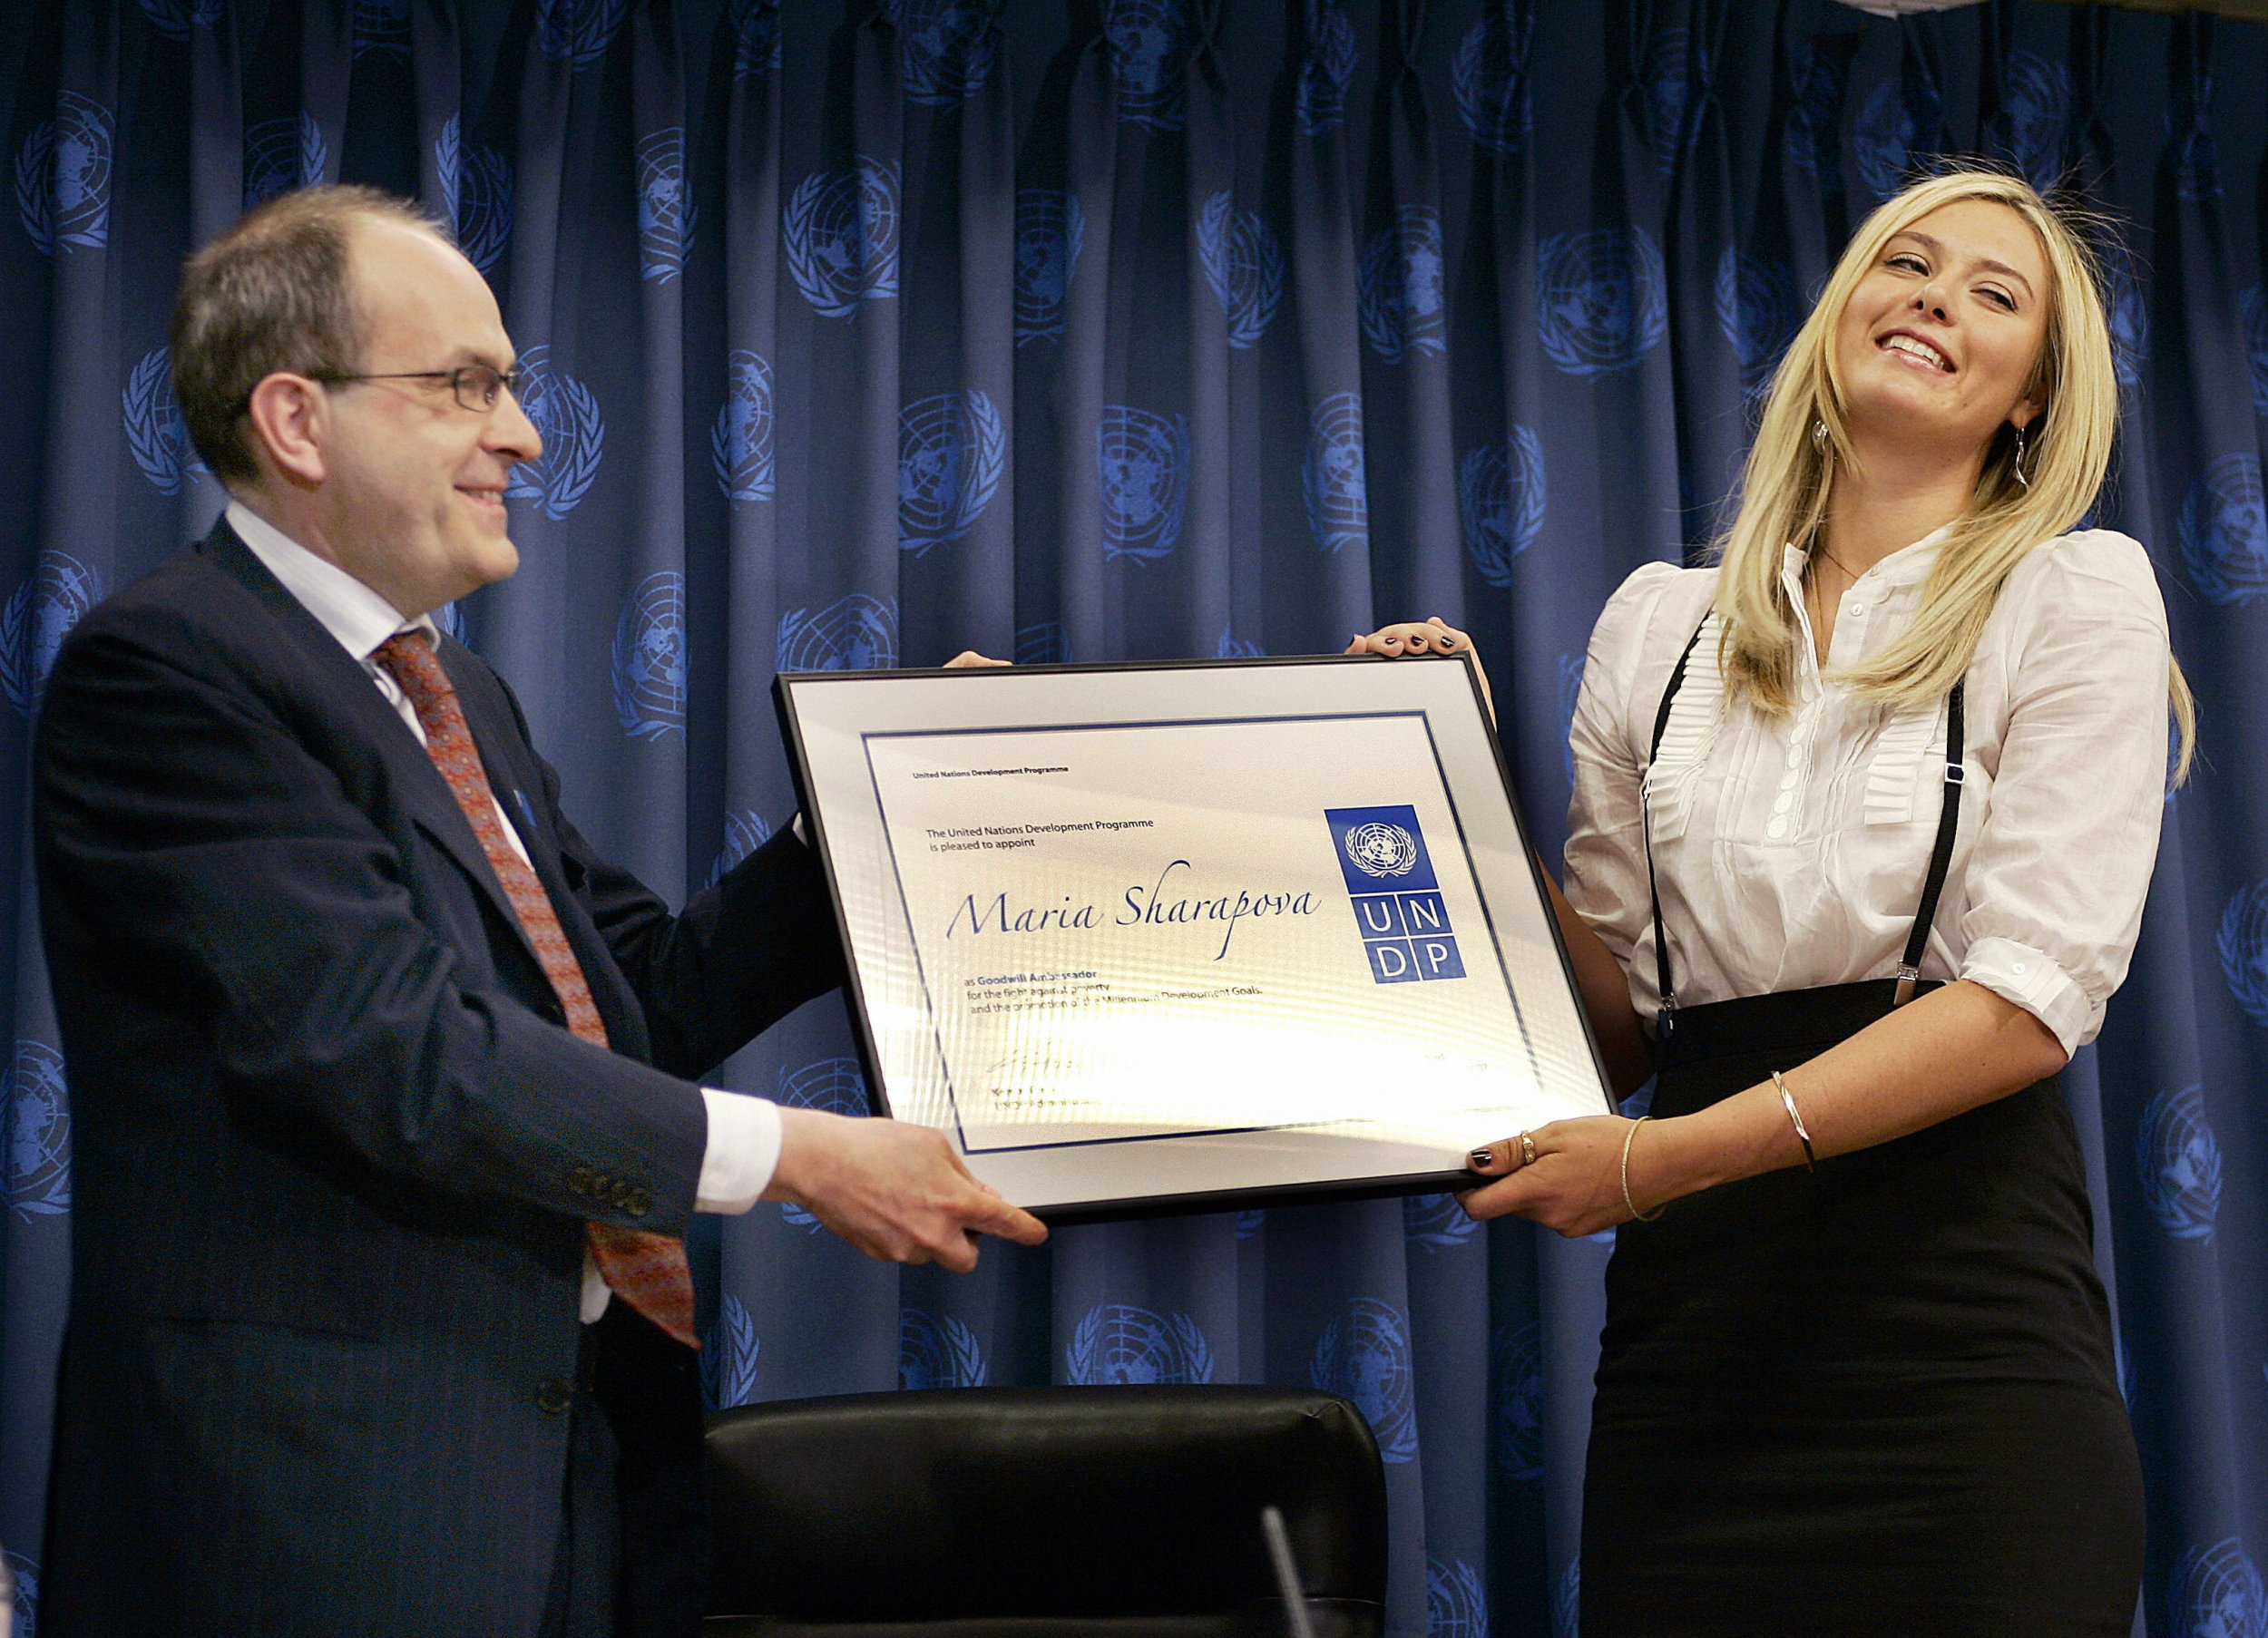 Maria Sharapova has been a UN Goodwill Ambassador for nine years.